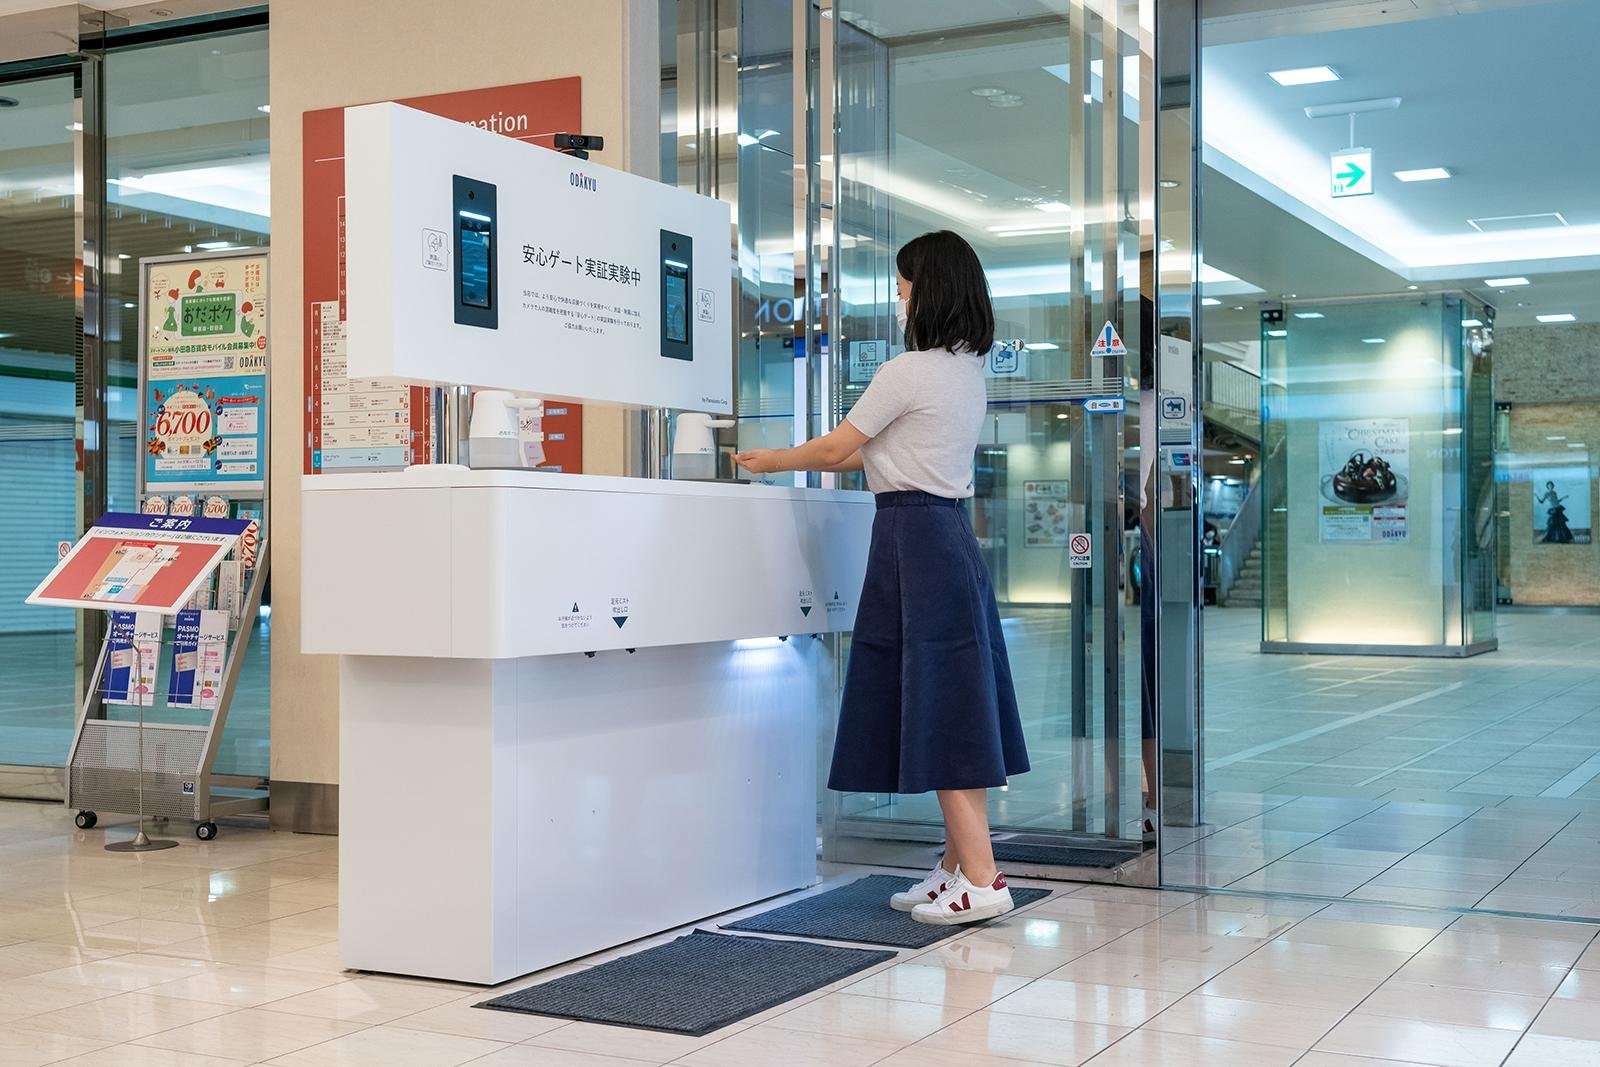 Photo: The Safe Gate Solution demonstration experiment at the Odakyu Department Store.